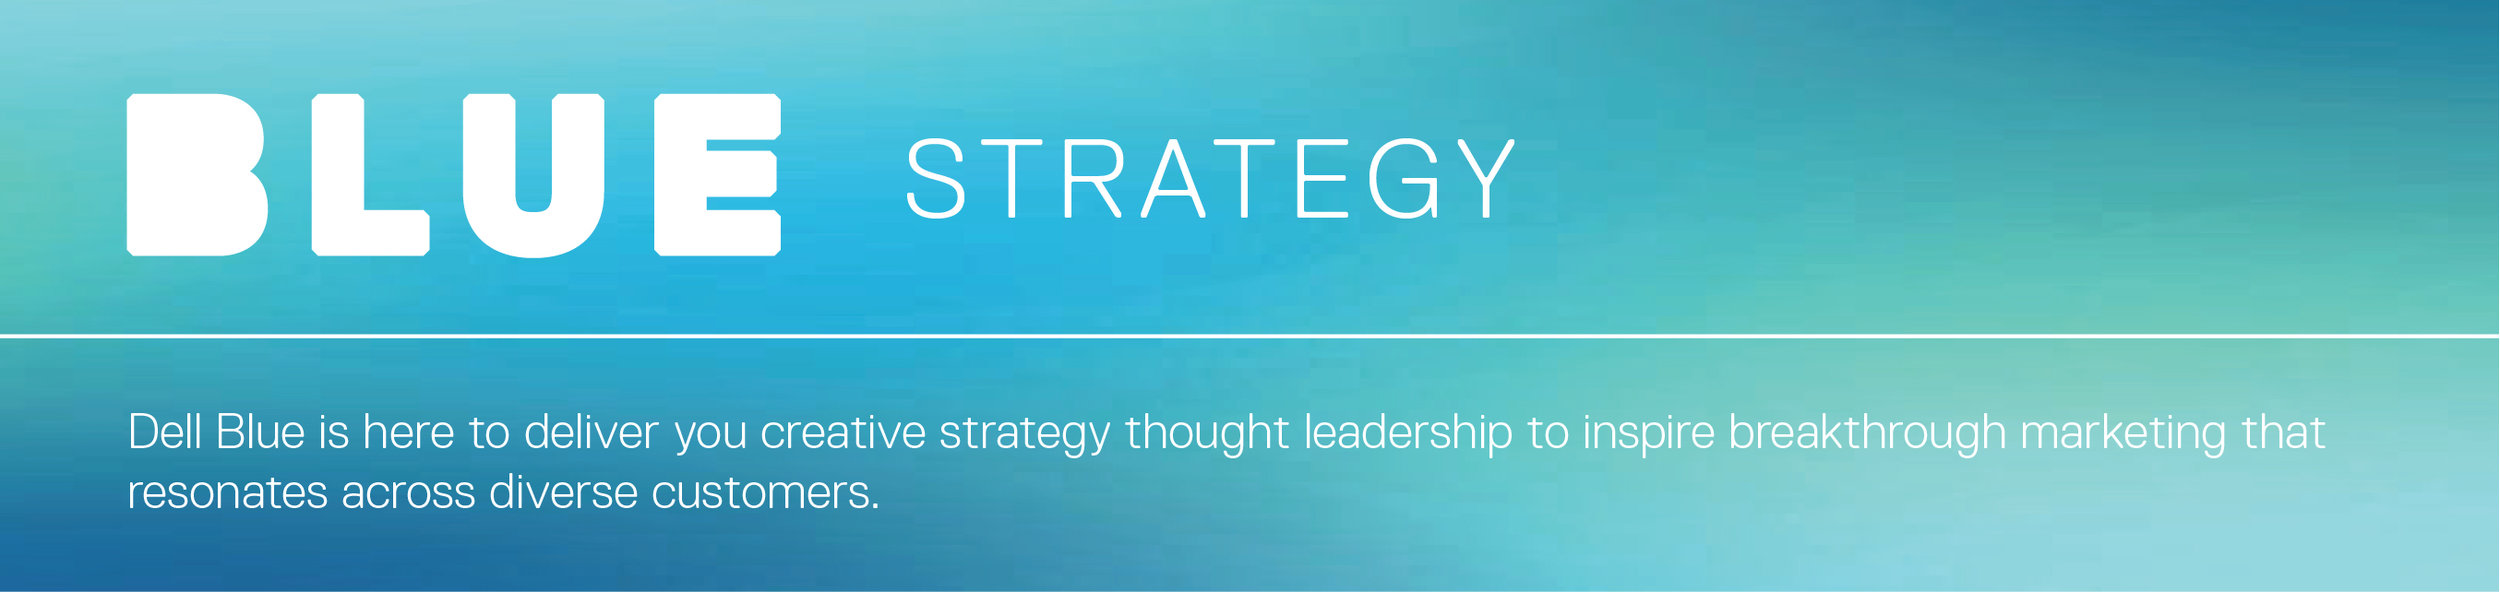 strategy blog-header.jpg